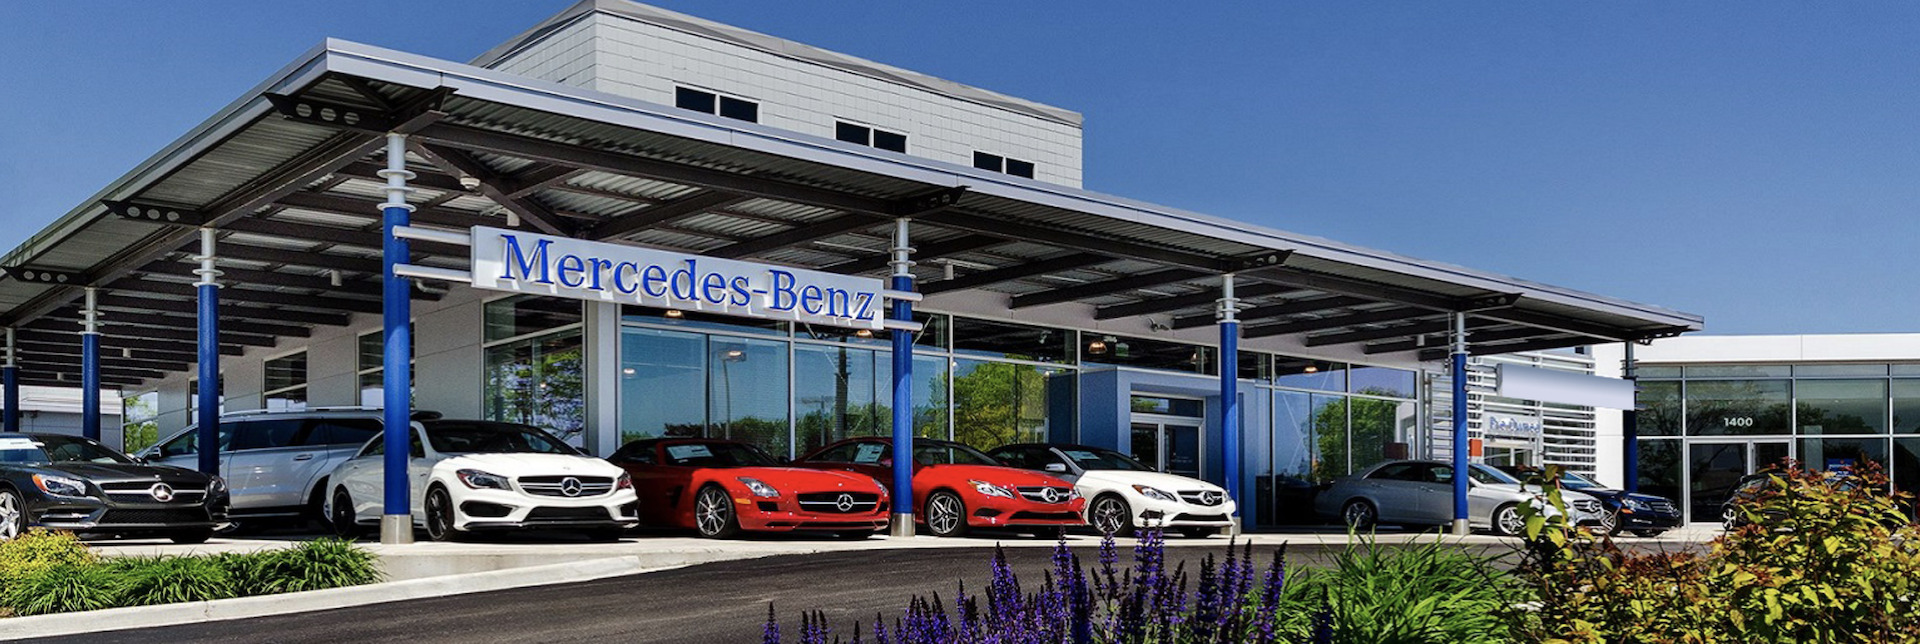 mercedes-benz of milwaukee north near dealership wauwatosa wi